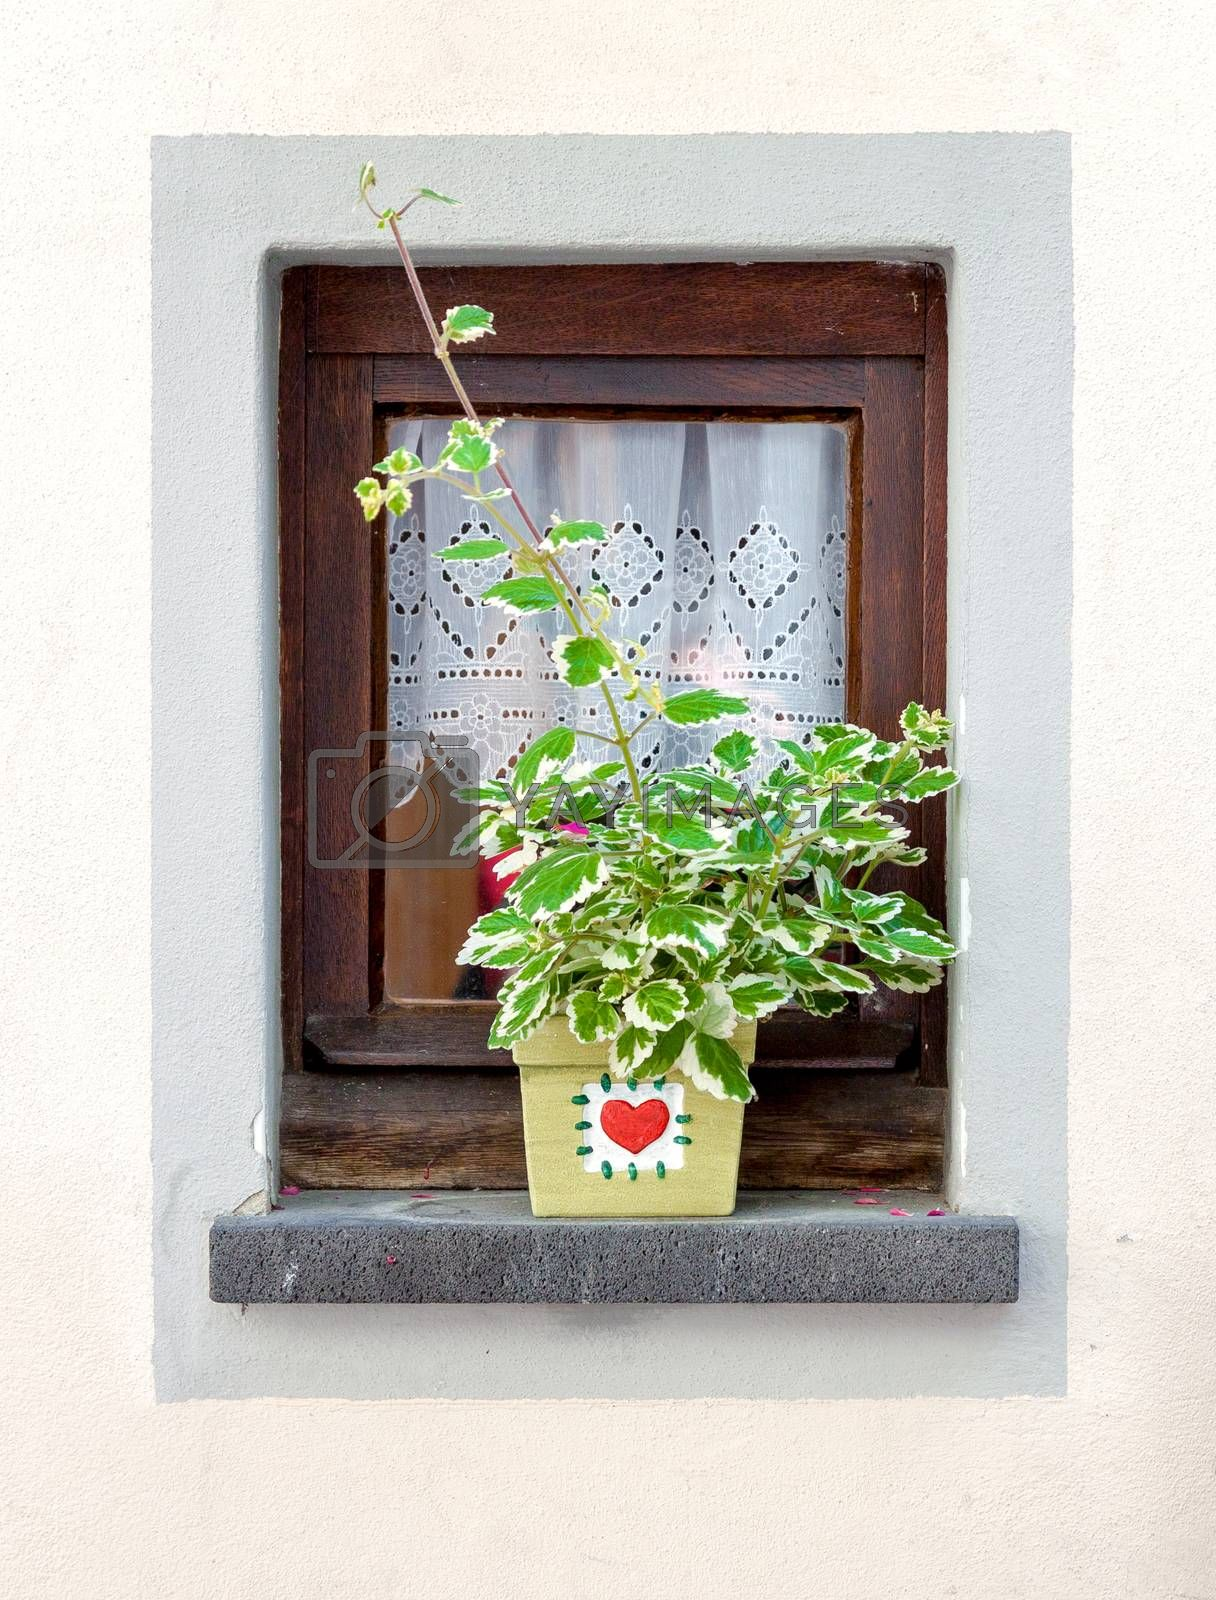 Small home window decorated with flower pot at summer